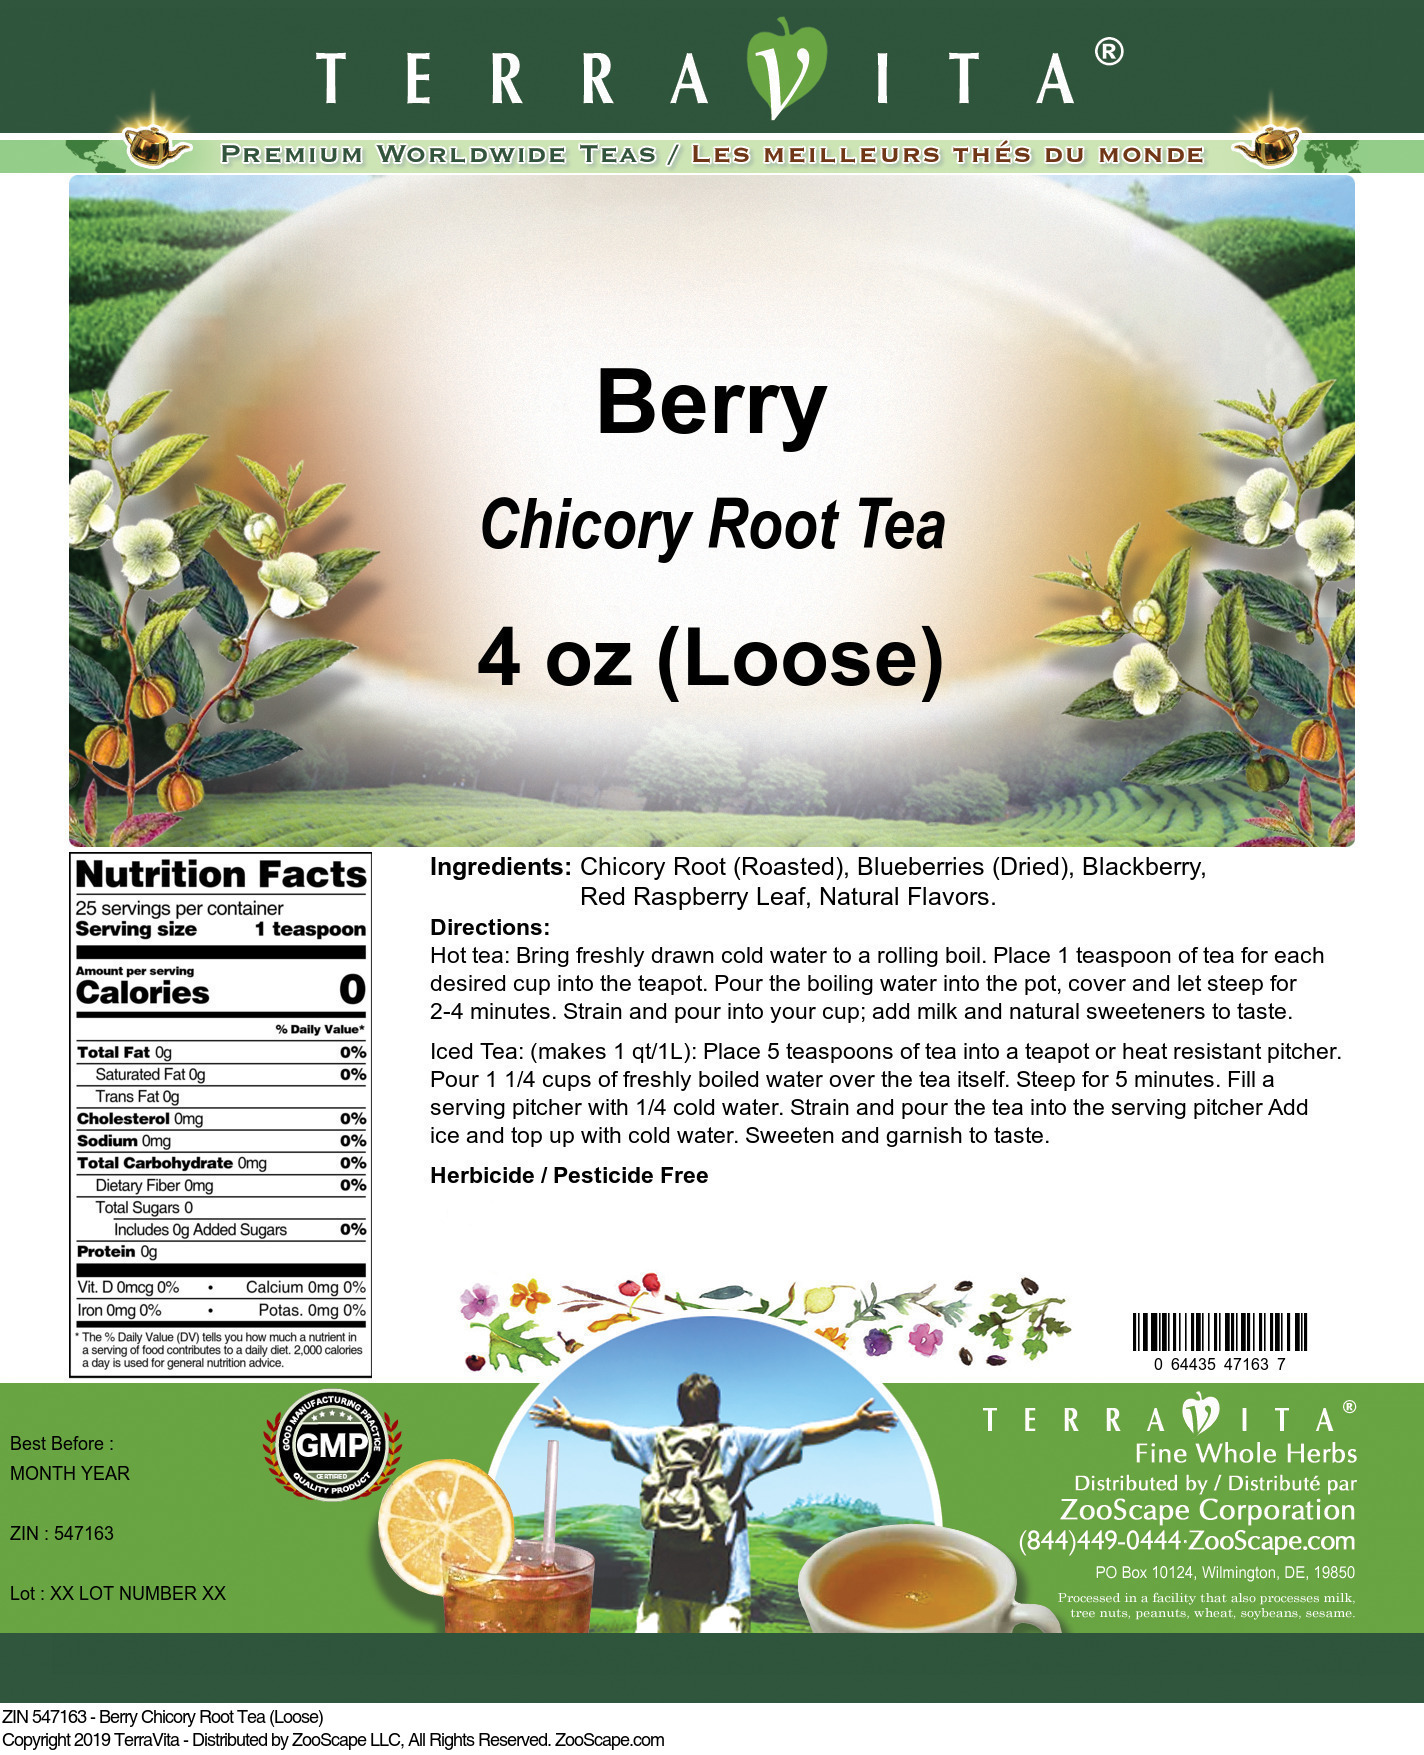 Berry Chicory Root Tea (Loose)